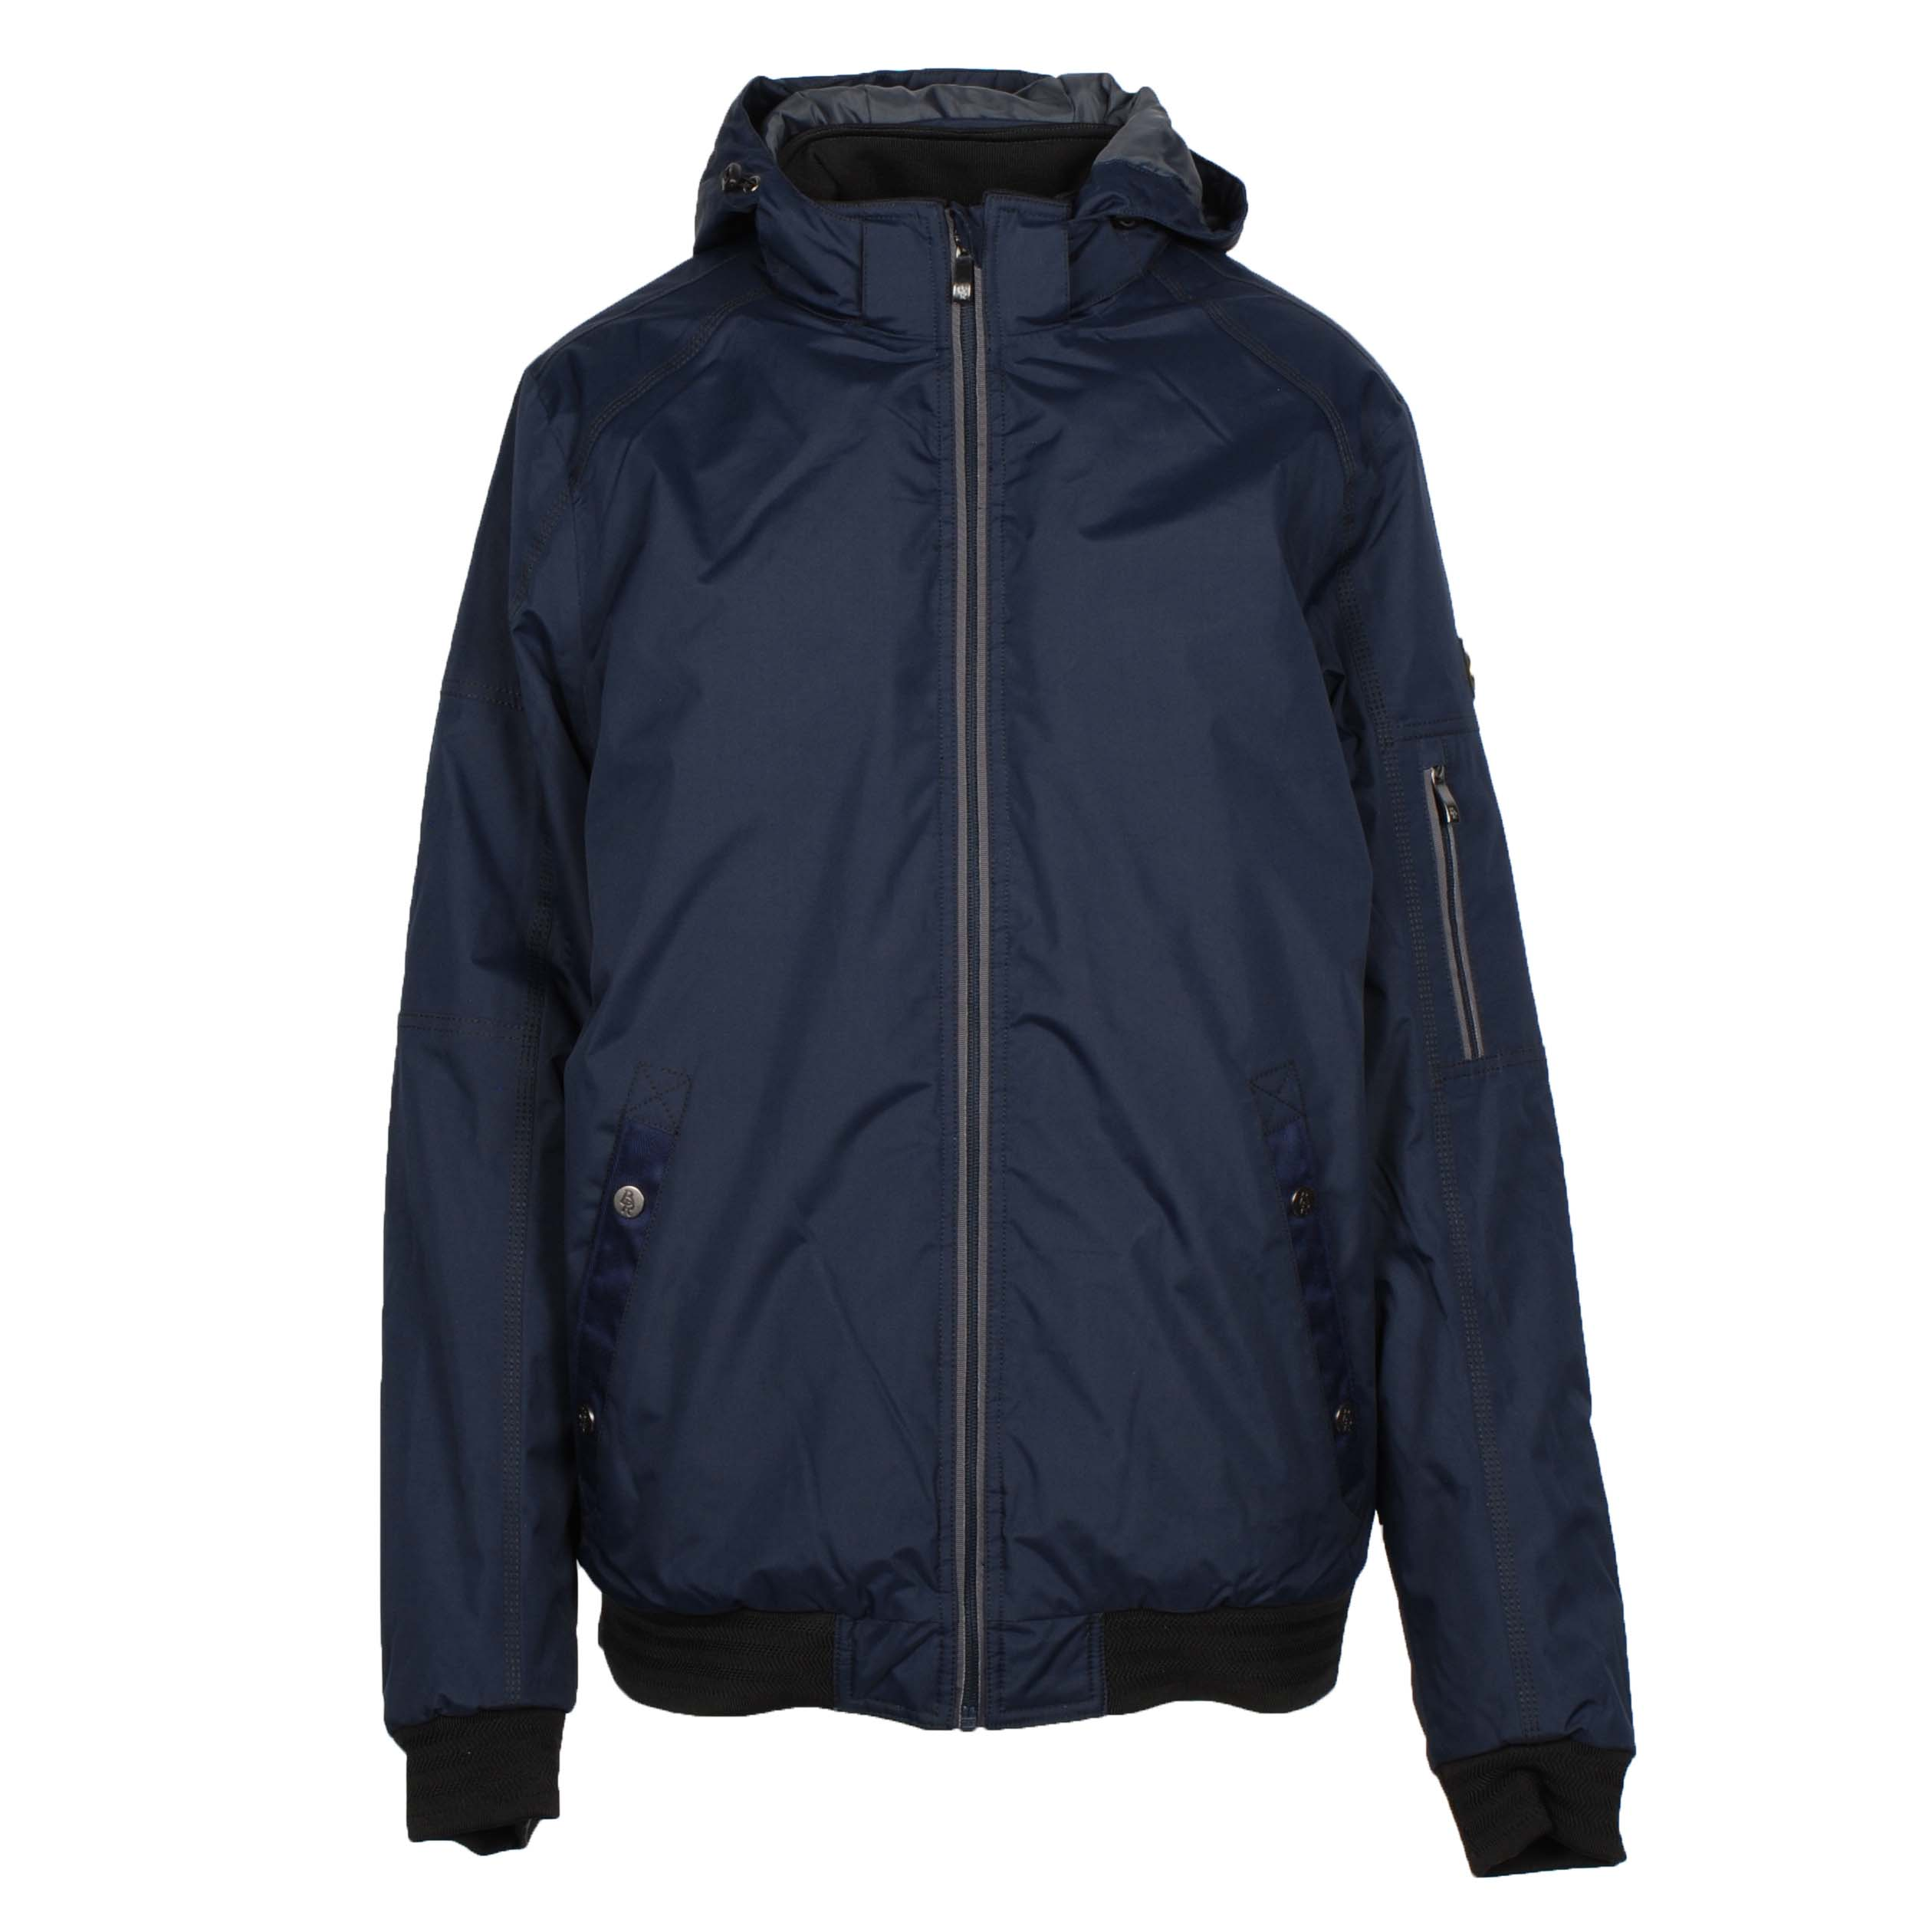 BR Paxton heren bomber donkerblauw maat:m